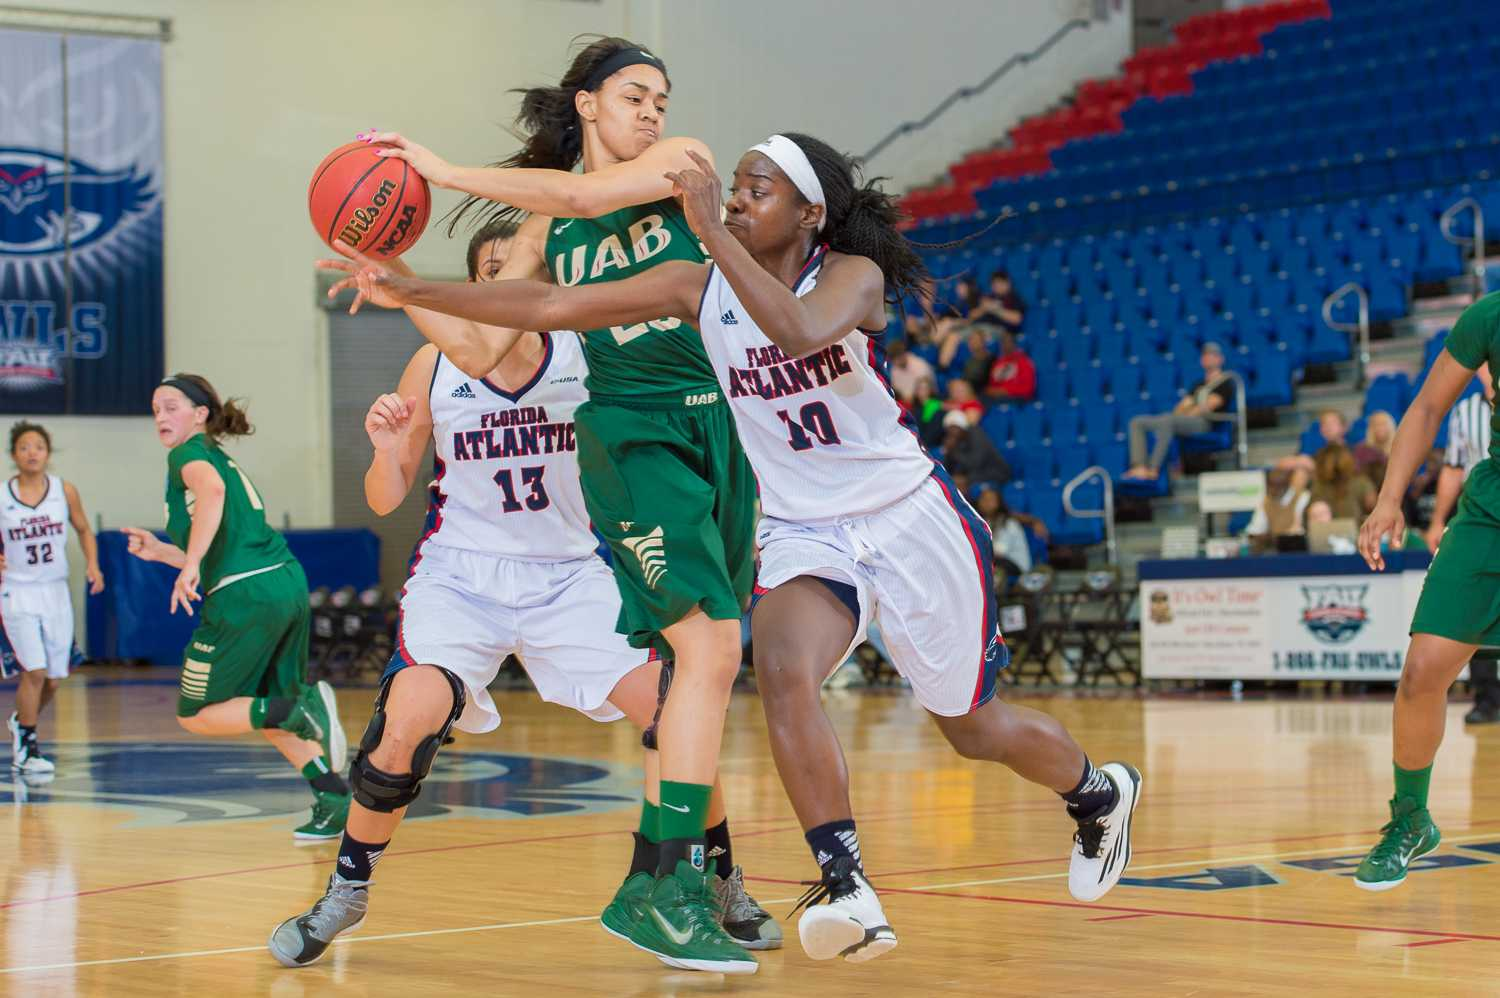 UAB forward Kayla Anderson (23) grabs a rebound in the second half while FAU guard Morgan Robinson (10) attempts to gain possession.